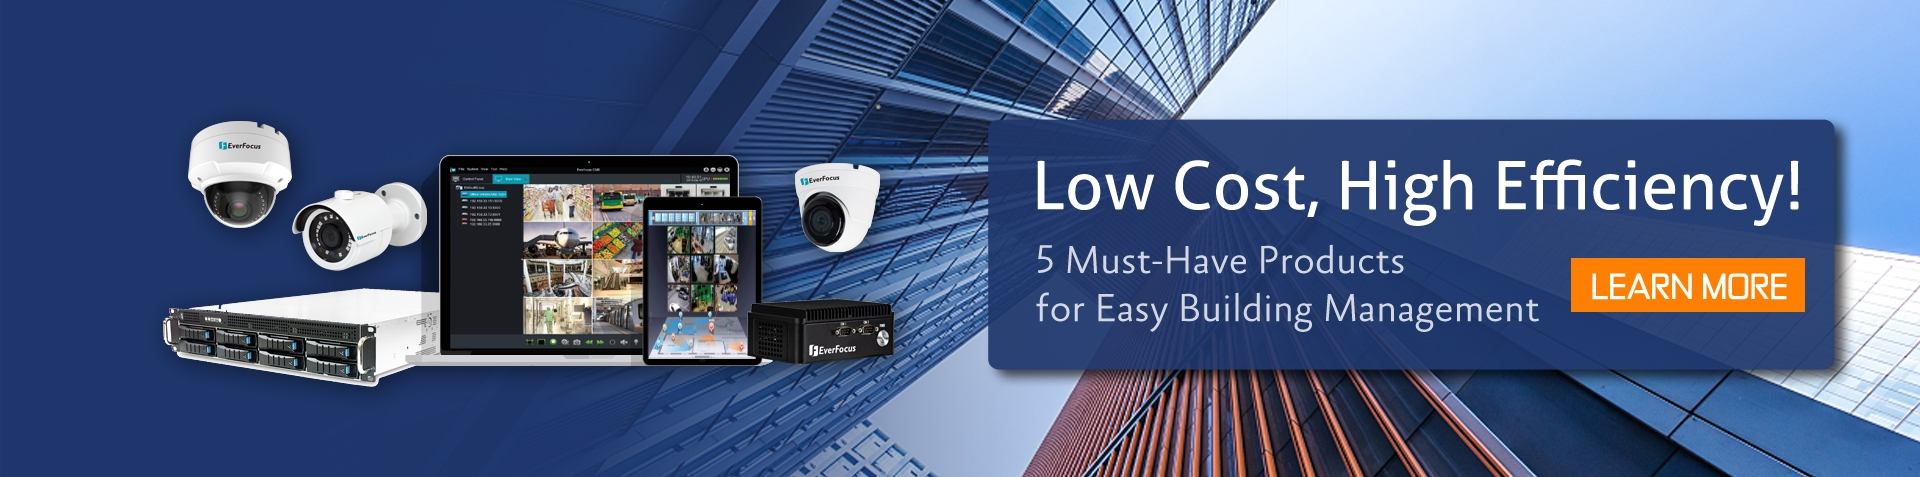 Low Cost, High Efficiency! 5 Must-Have Products for Easy Building Management